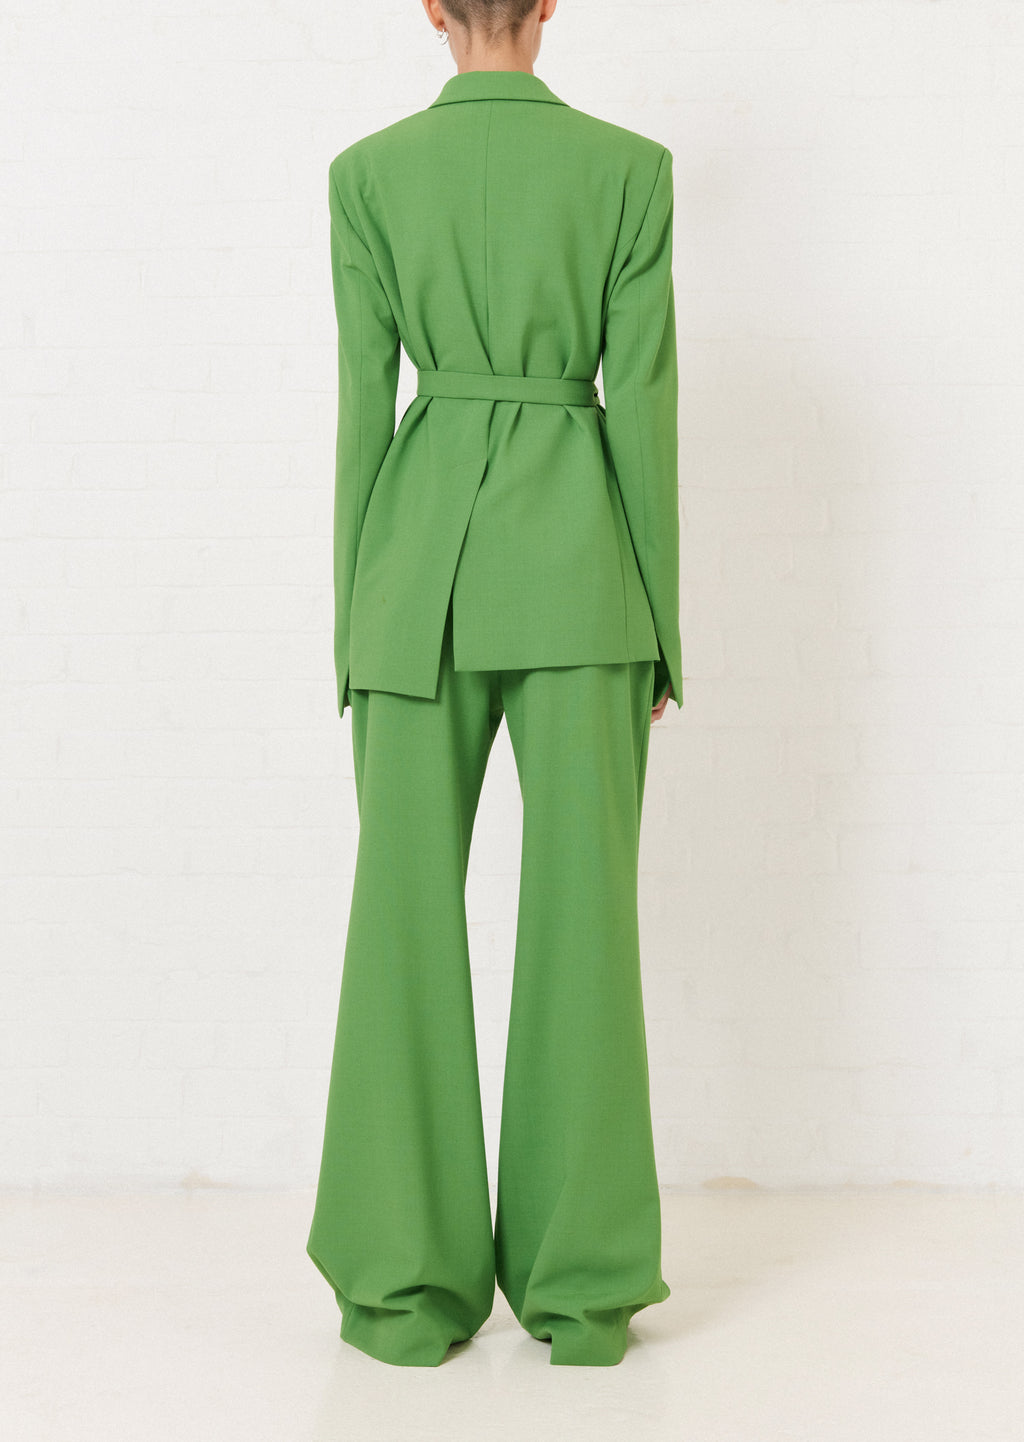 Green Tailored Suit Jacket